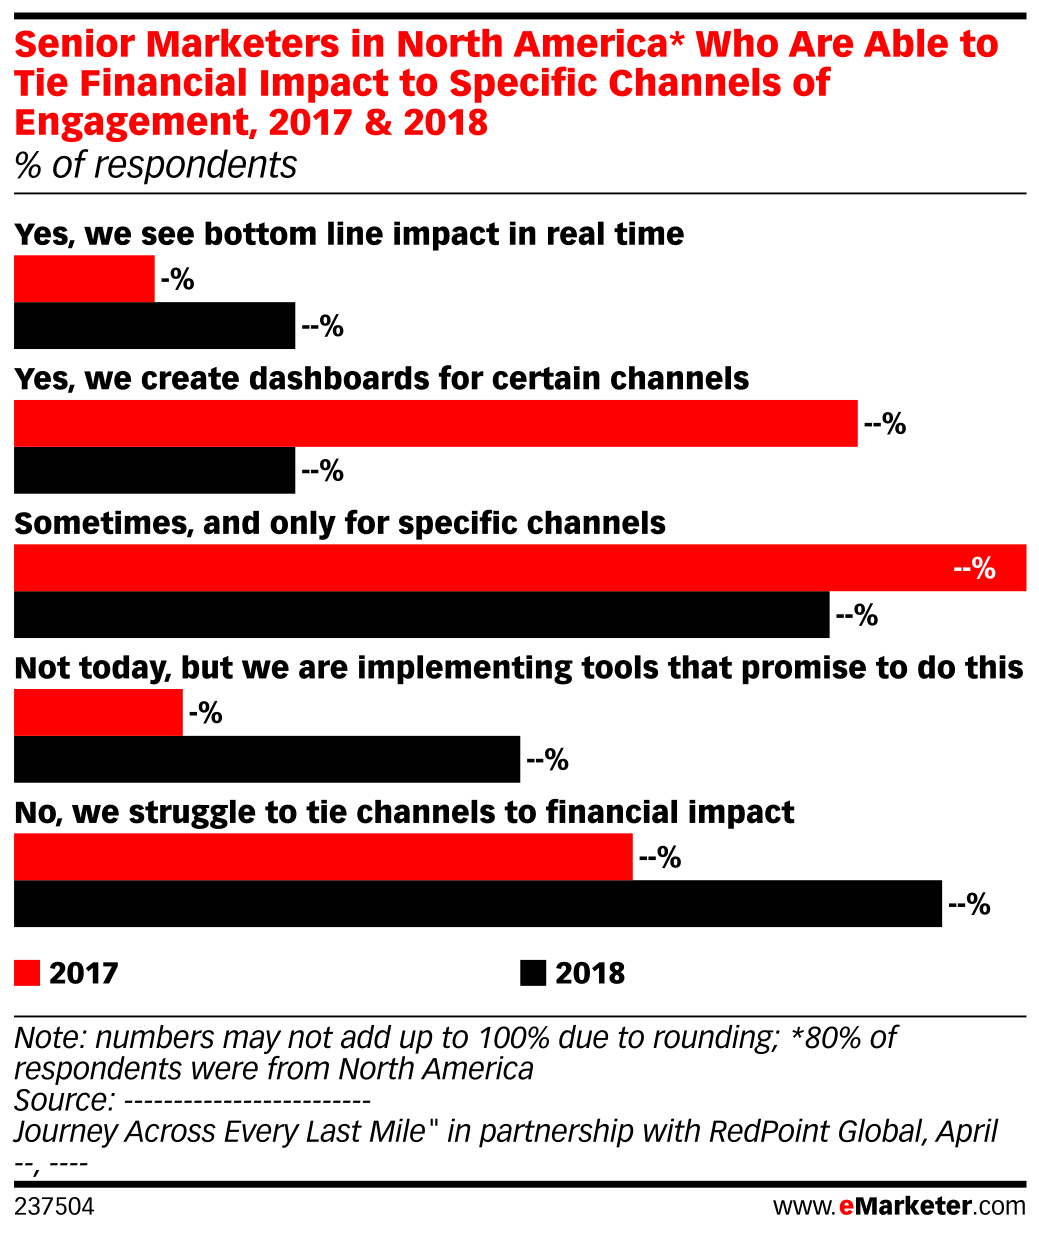 Senior Marketers in North America* Who Are Able to Tie Financial Impact to Specific Channels of Engagement, 2017 & 2018 (% of respondents)